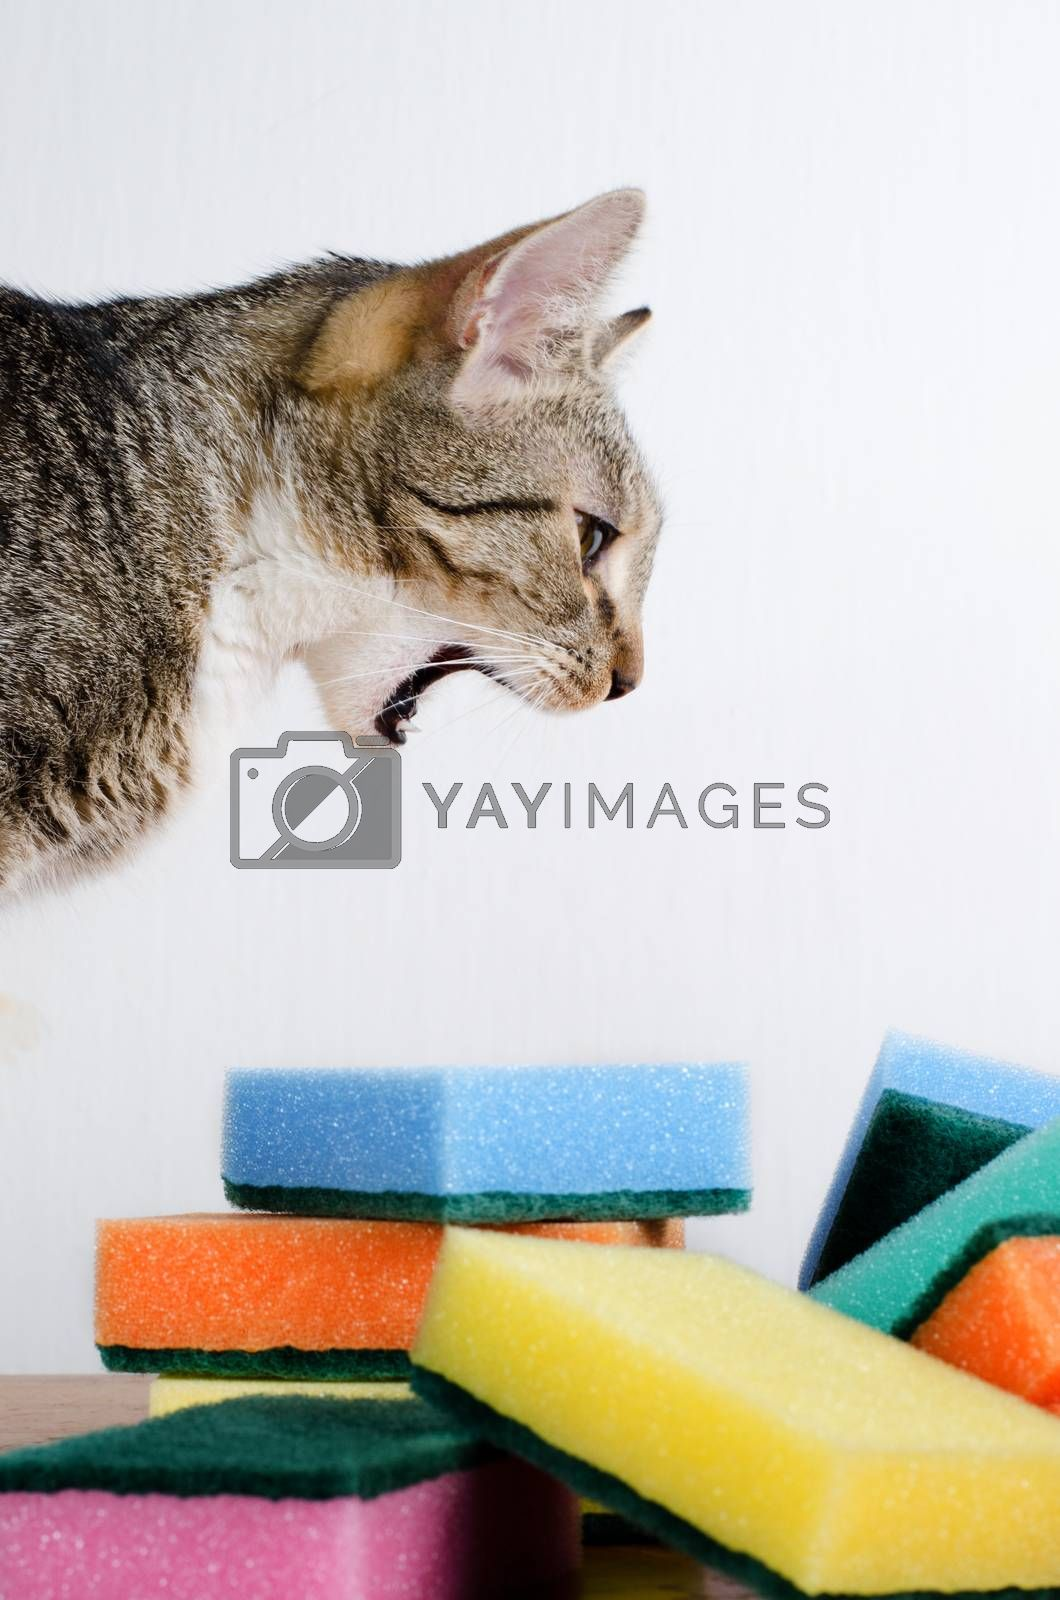 cat and cleaning sponges